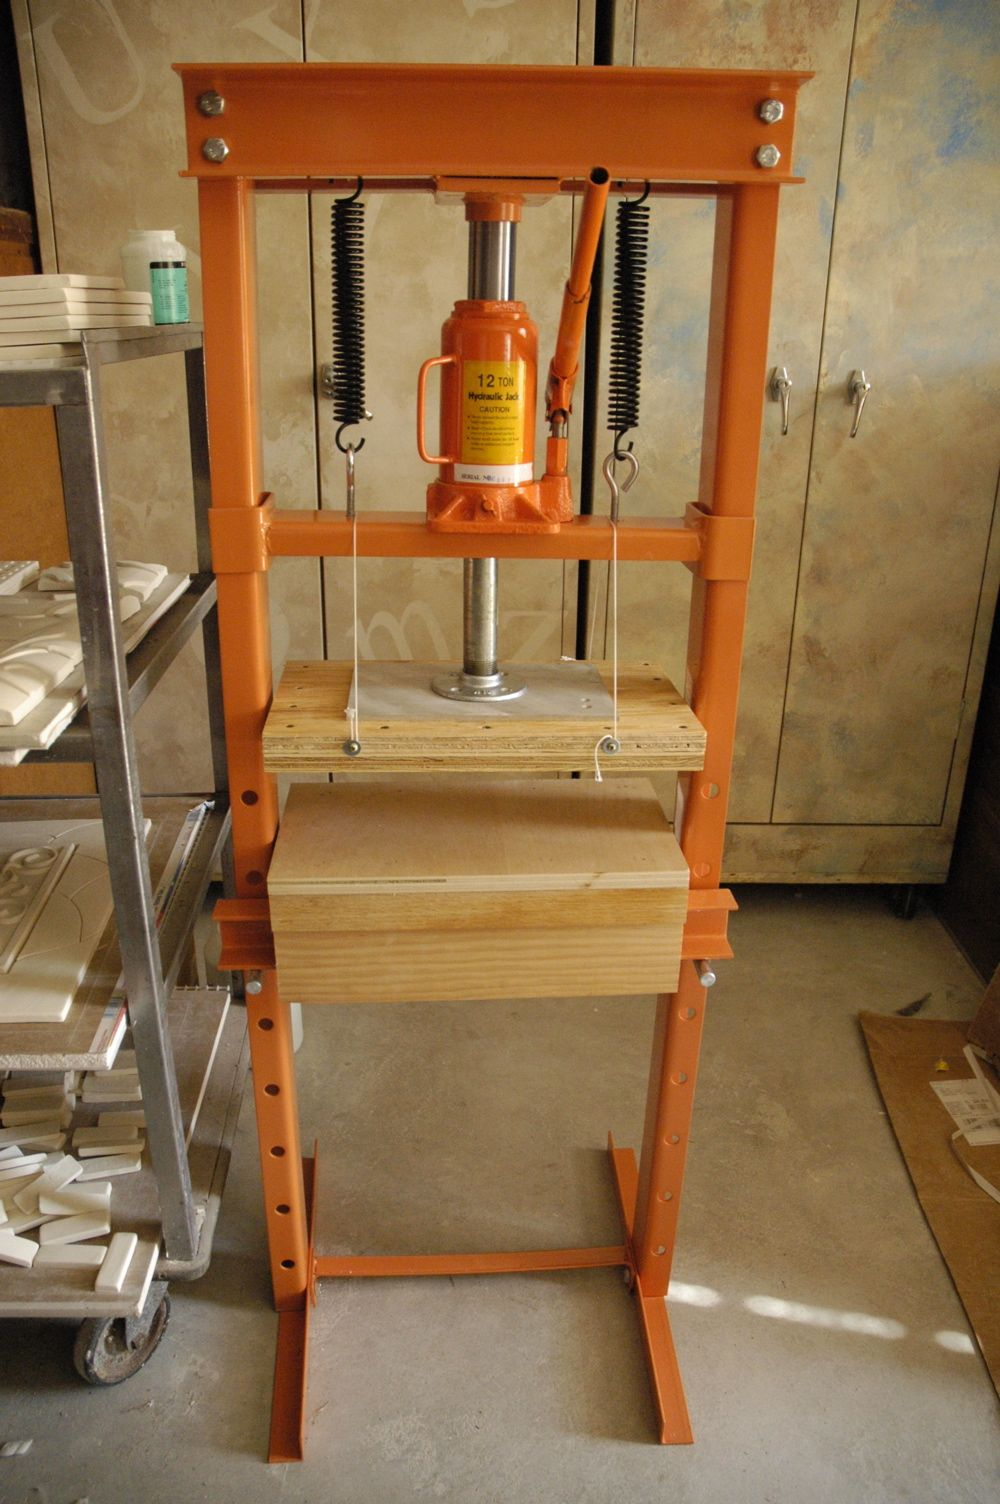 Hydraulic Tile Press Hydraulic Tiles Diy Tile Hydraulic Shop Press